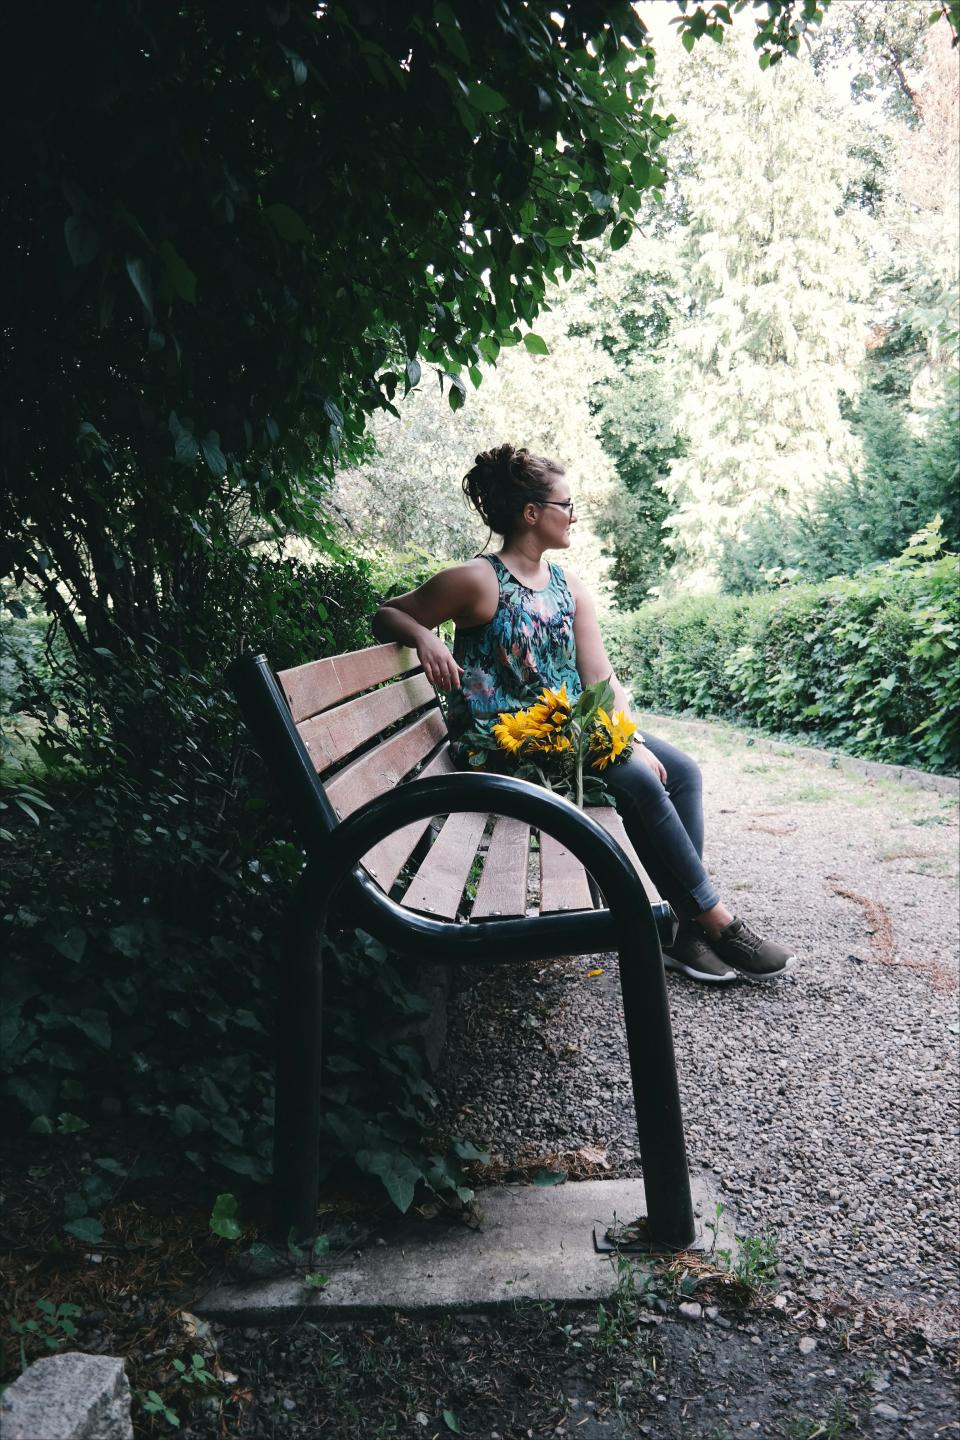 people girl sitting waiting alone bench nature flower trees green grass garden